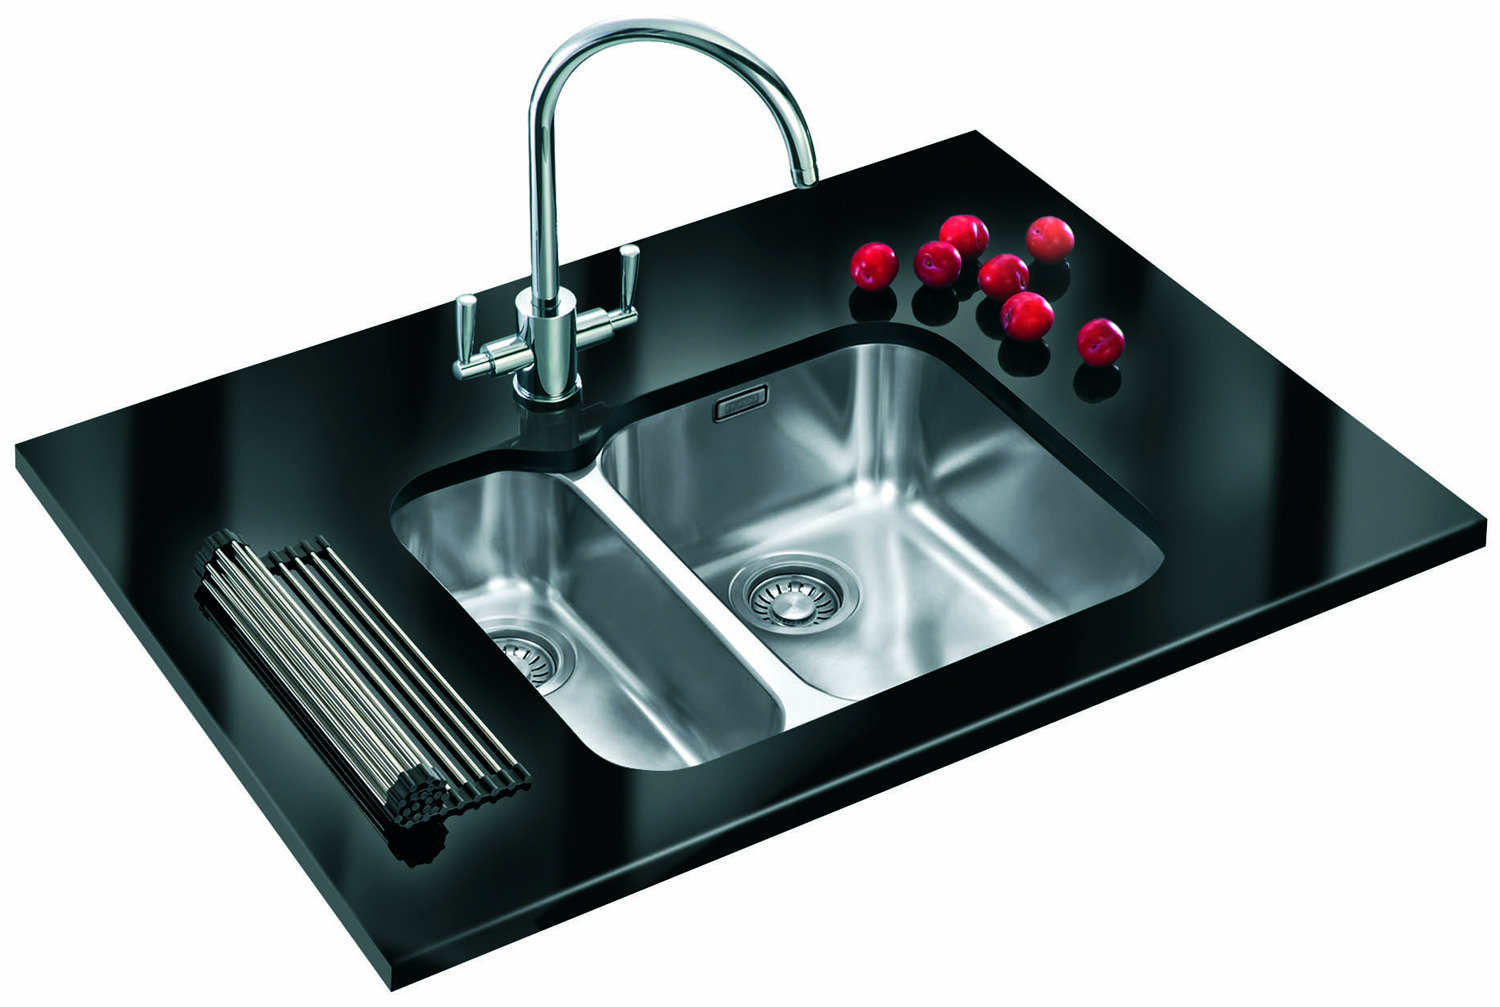 ... of Franke Ariane ARX 160D Stainless Steel 1.5 Bowl Undermount Sink